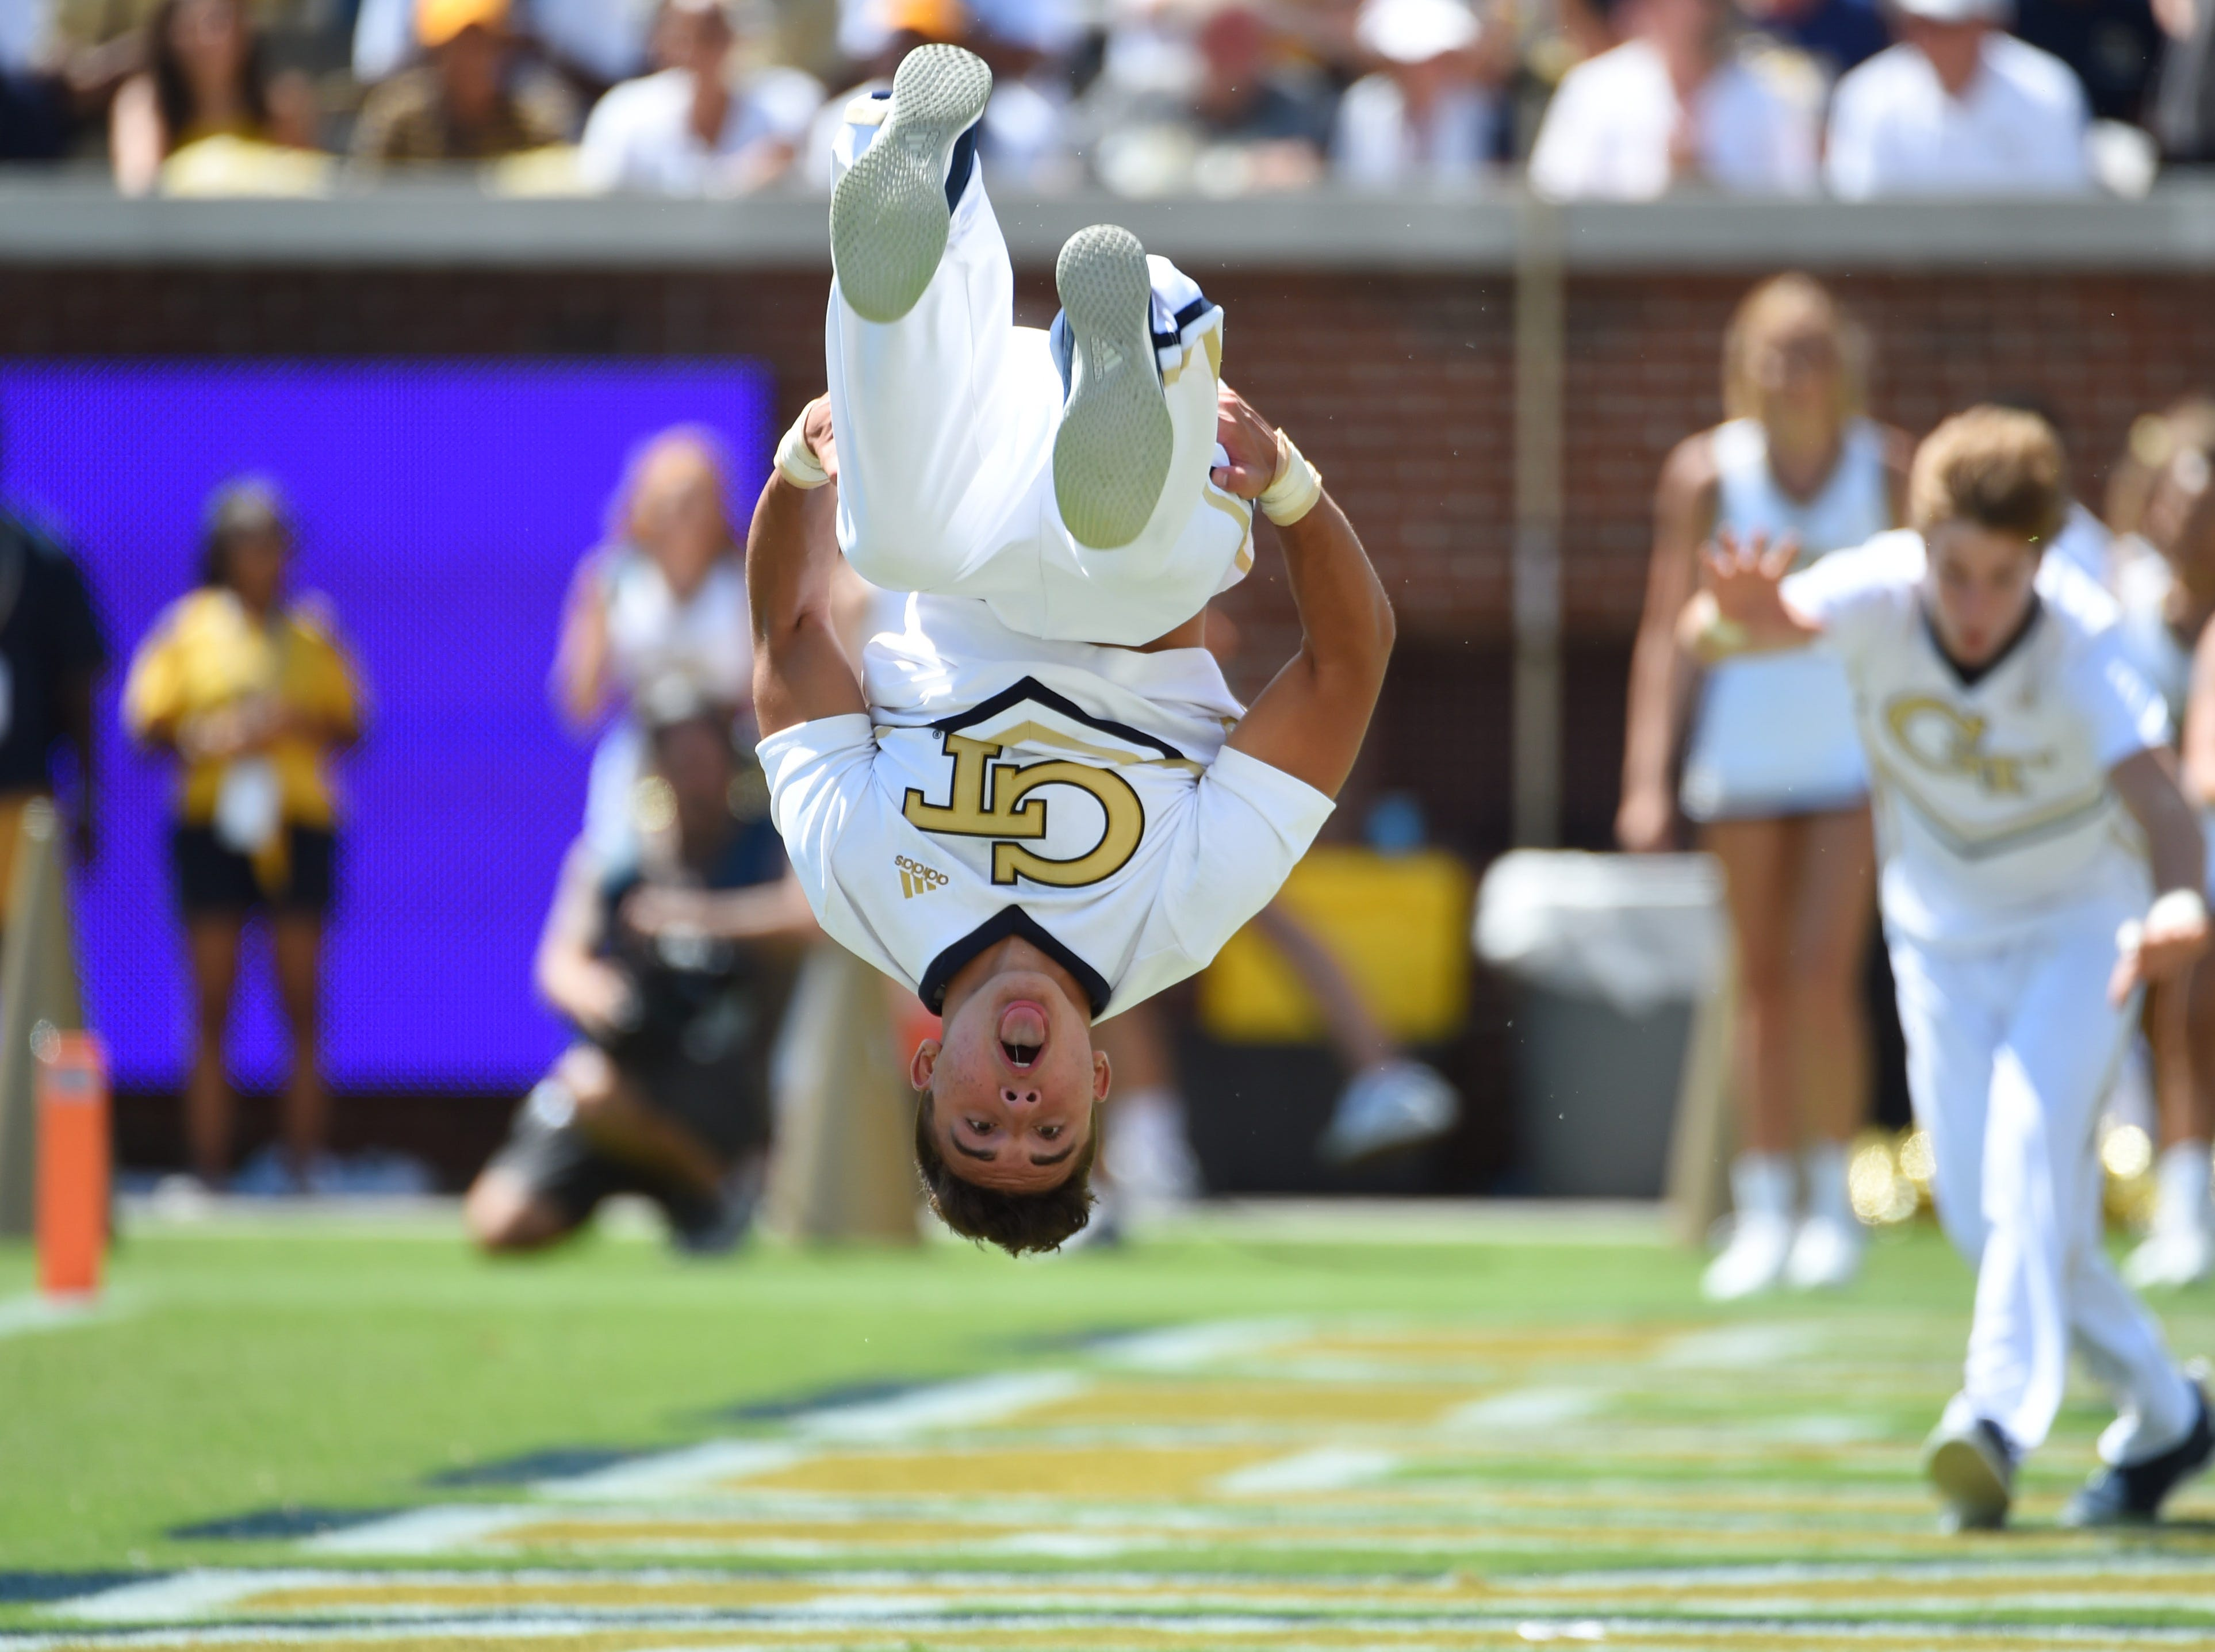 Week 1: A Georgia Tech Yellow Jackets cheerleader does a flip during the second half against the Alcorn State Braves at Bobby Dodd Stadium.